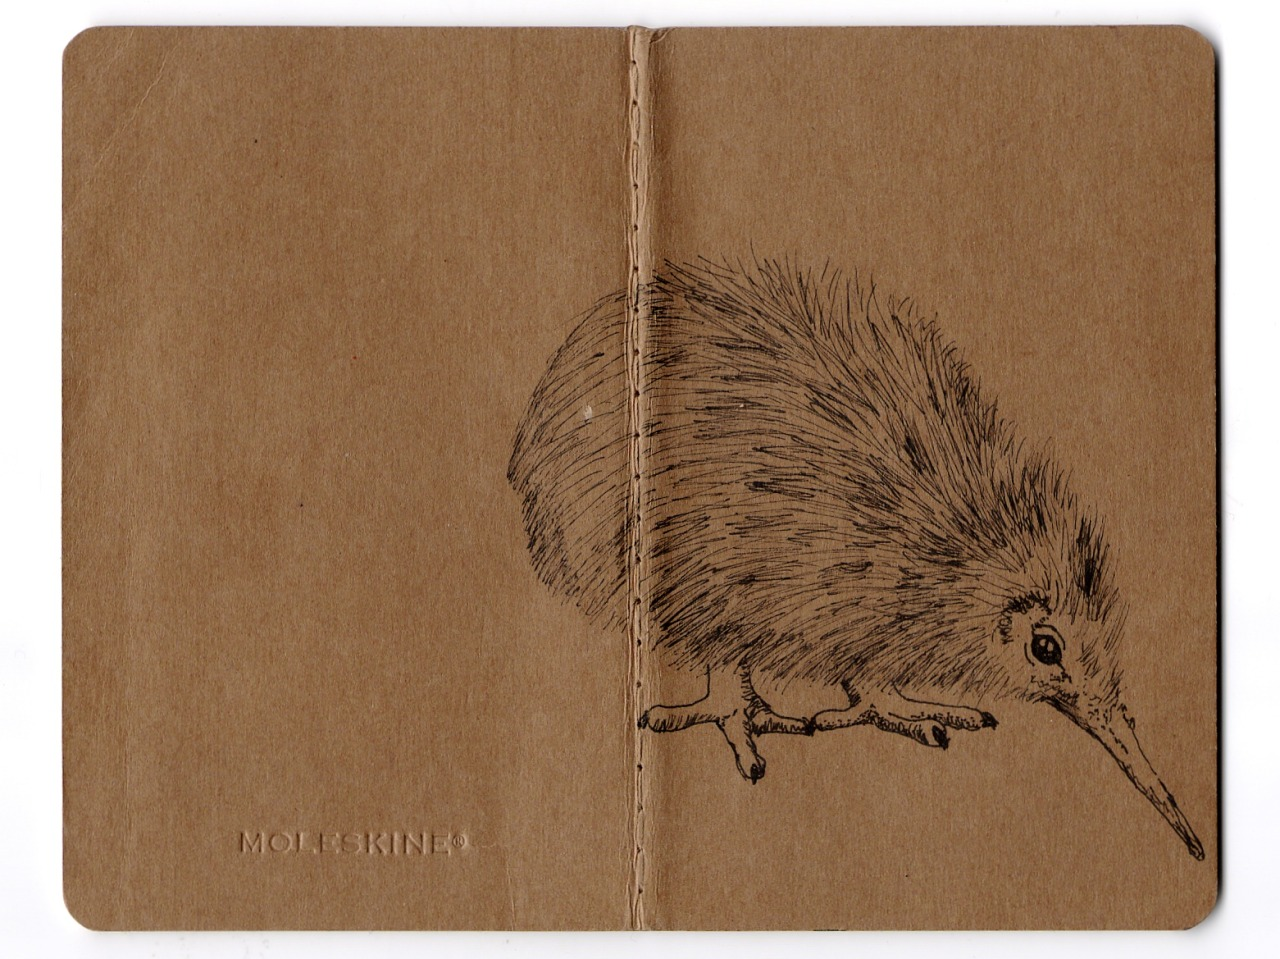 Here's the kiwi bird I drew on a little moleskine for Tony. <3